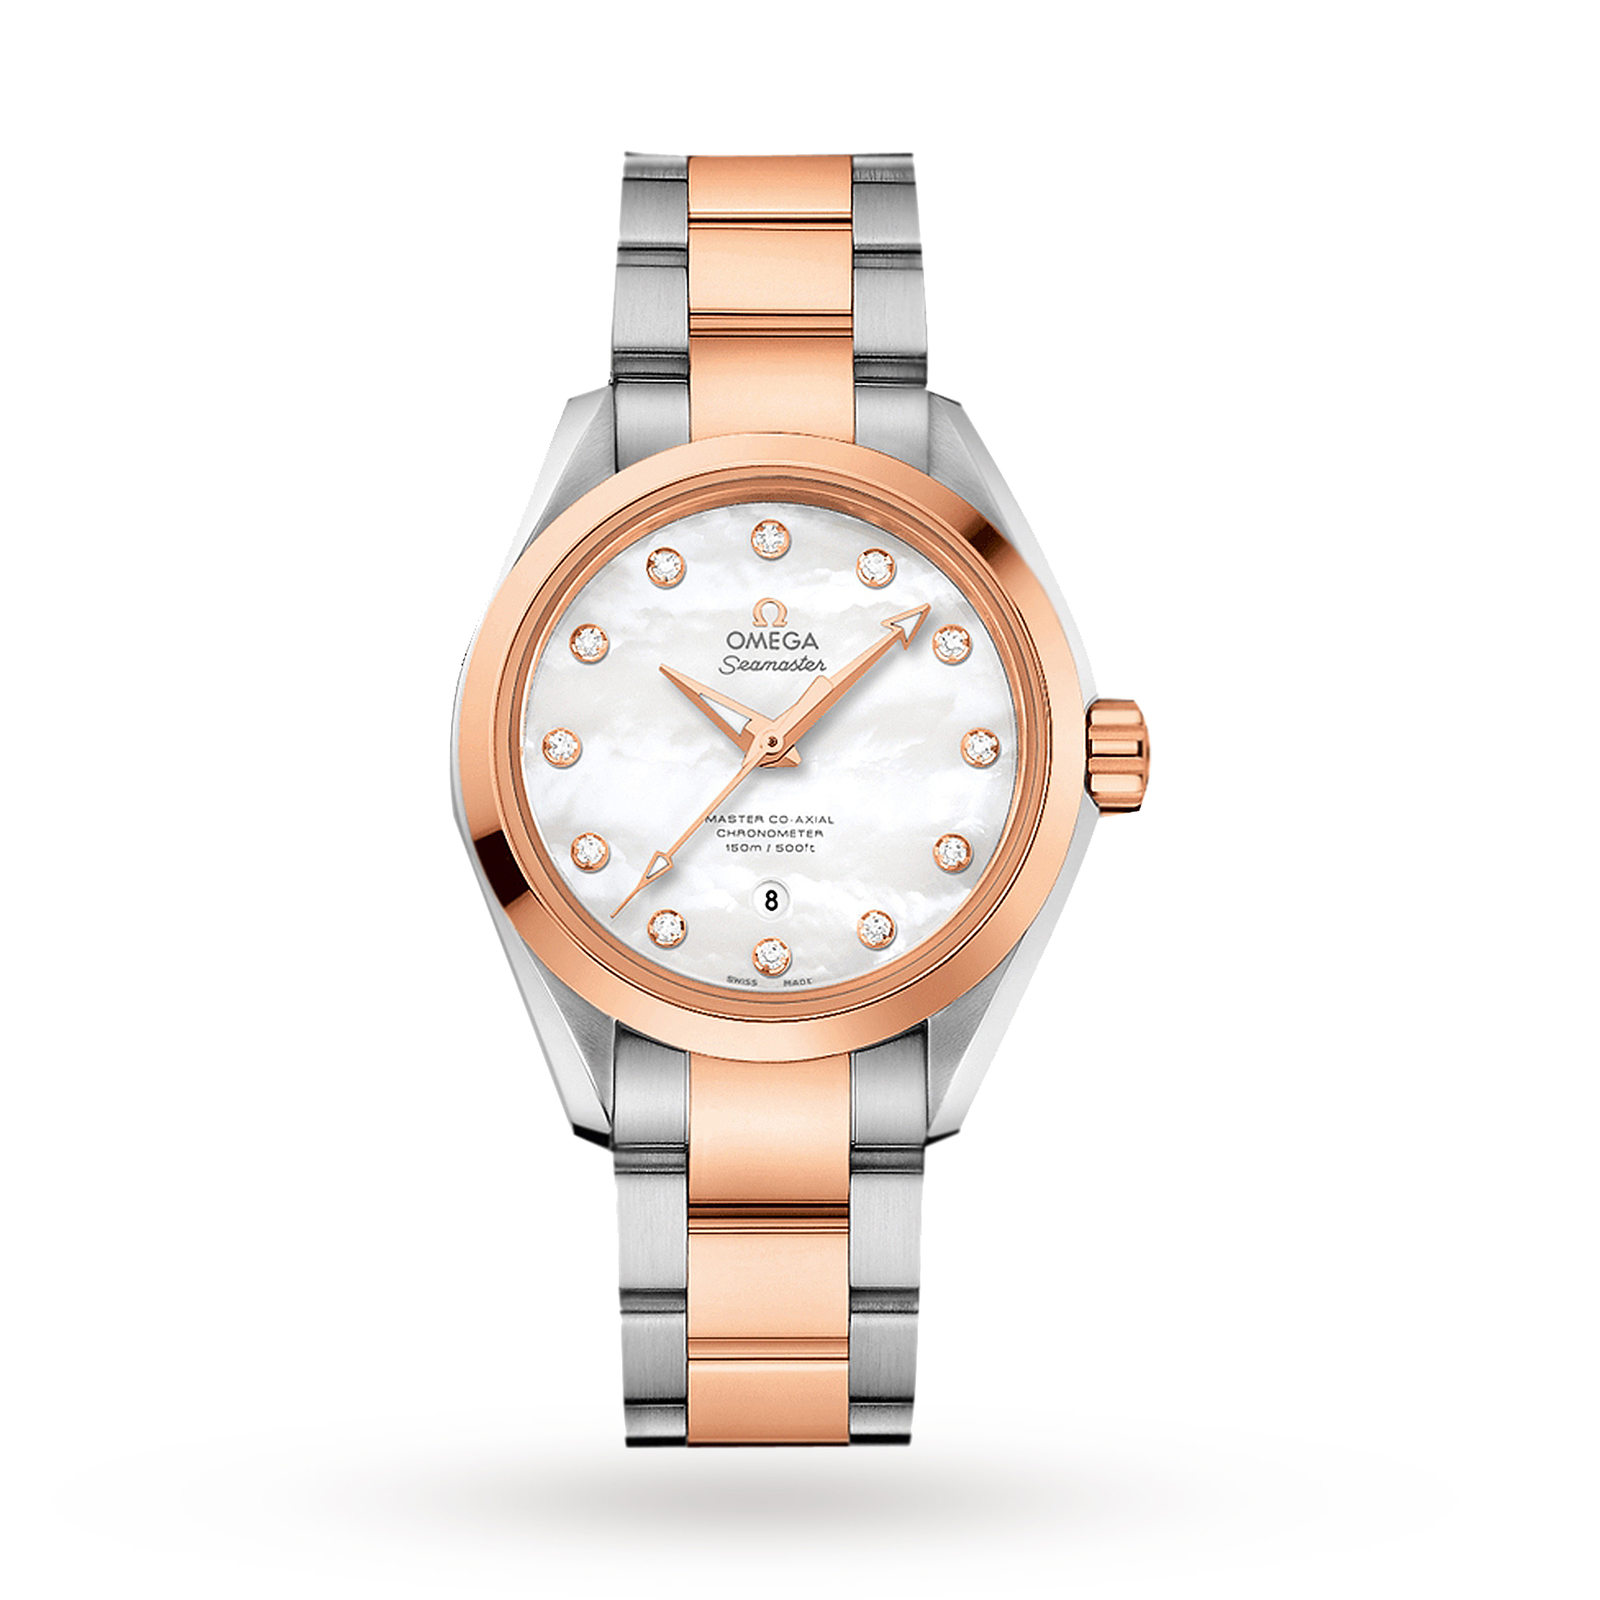 Omega Aquaterra Master Co-Axial Ladies Watch